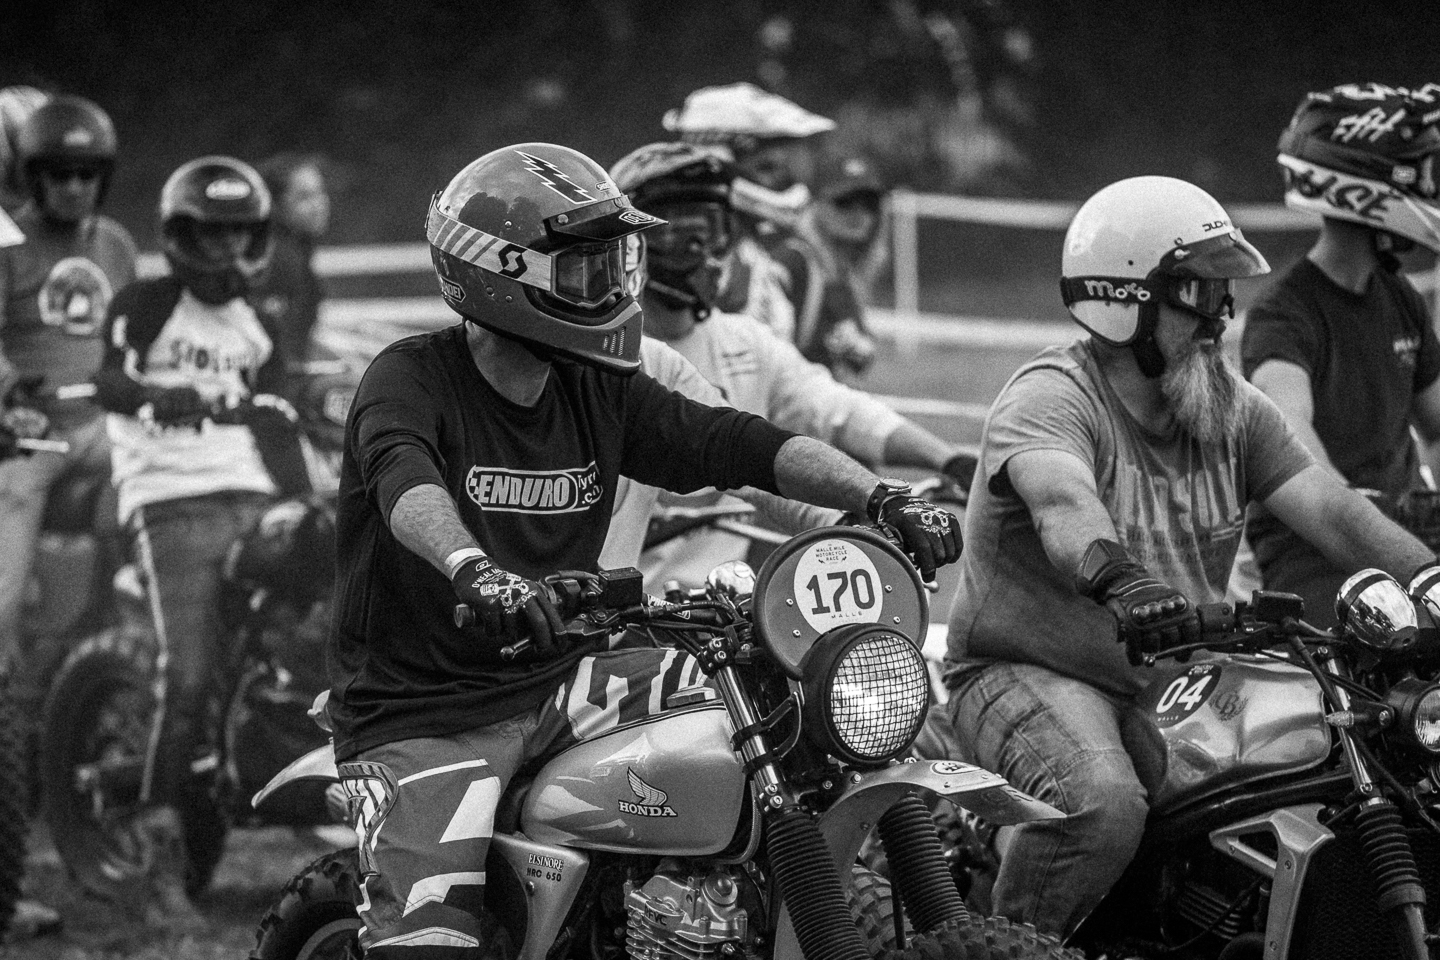 Black and white motorcycle racers waiting